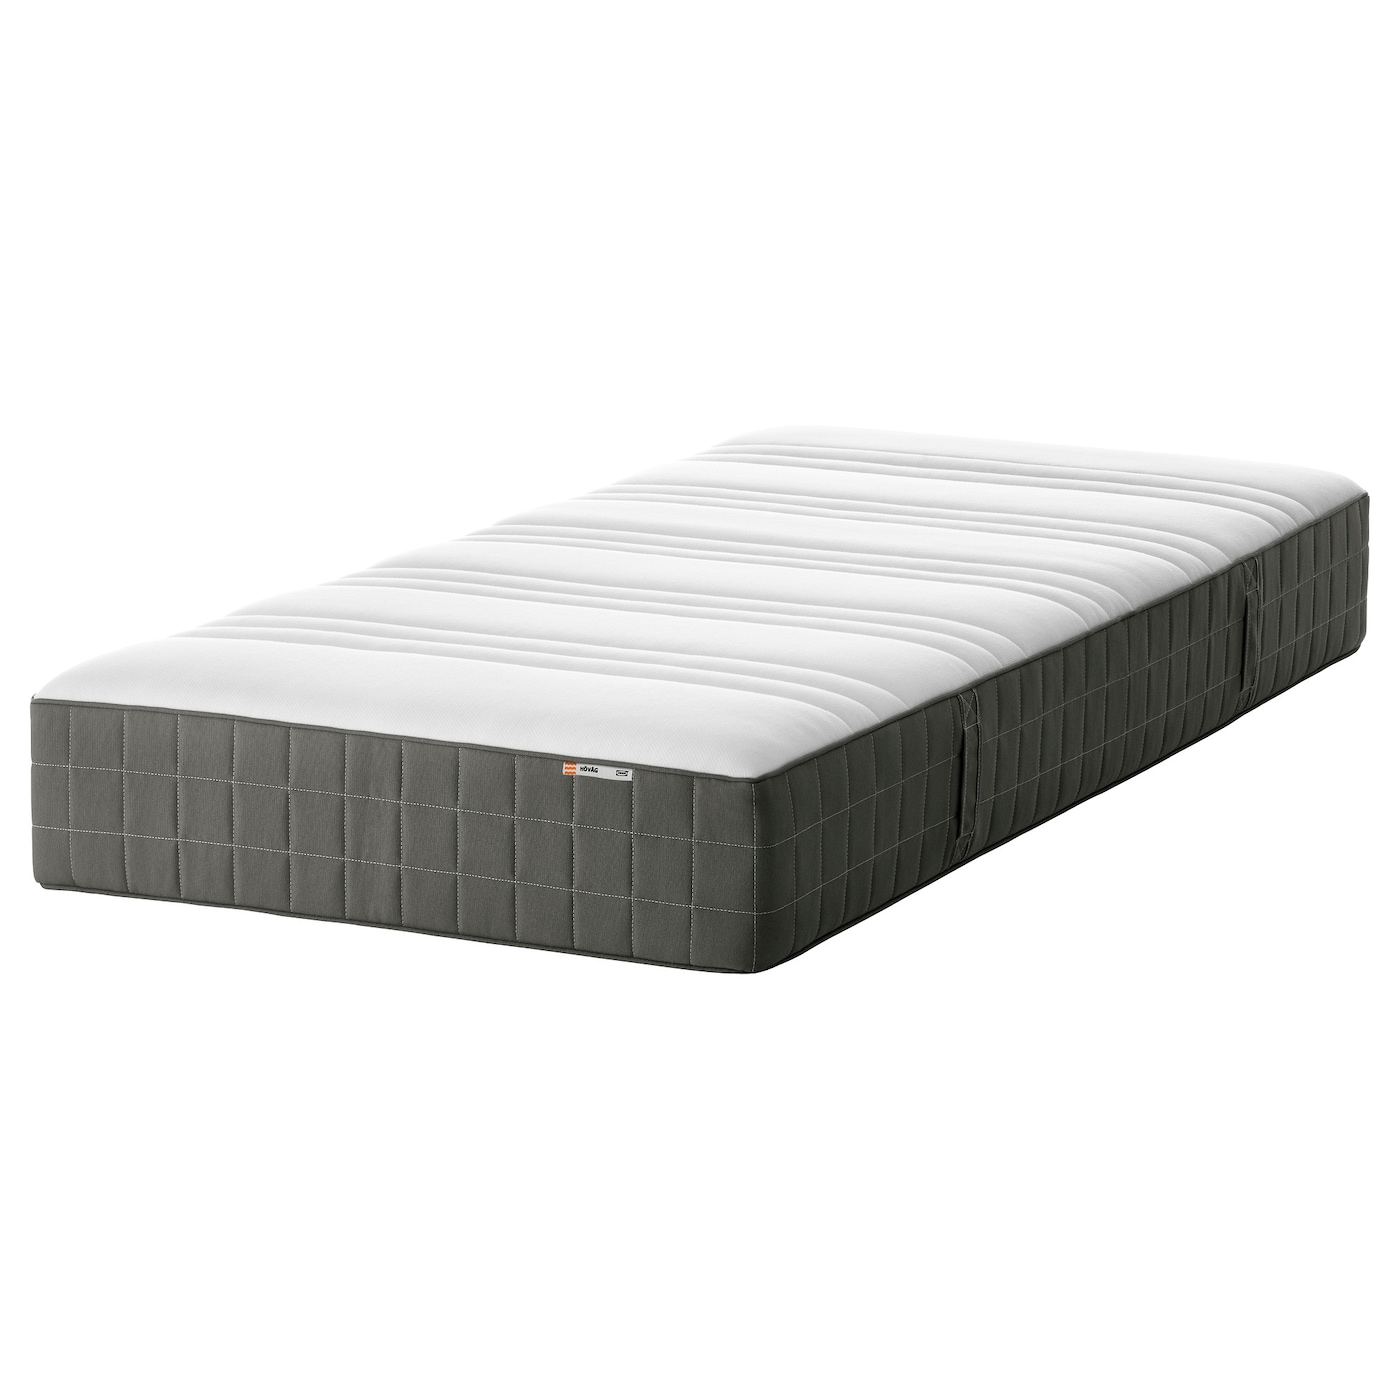 h v g matelas ressorts ensach s mi ferme gris fonc 90x200 cm ikea. Black Bedroom Furniture Sets. Home Design Ideas